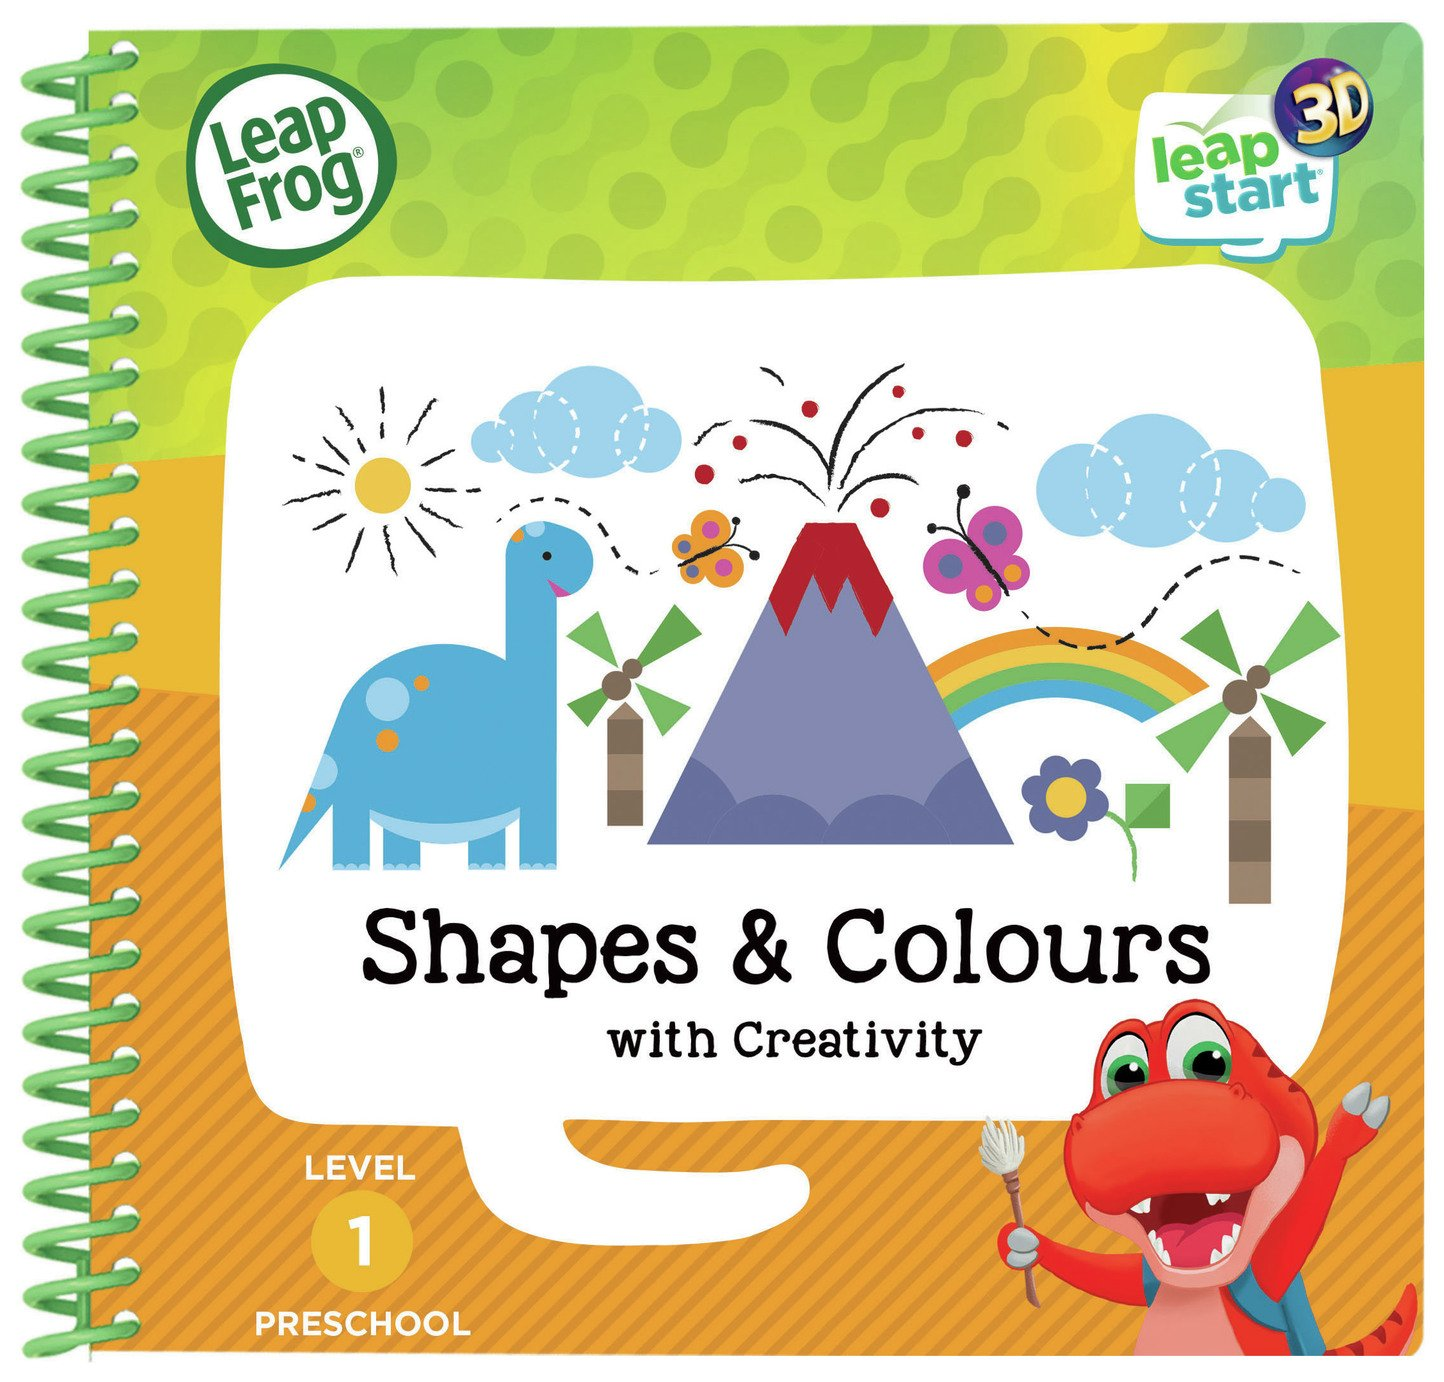 LeapFrog Shapes and Colours Activity Book